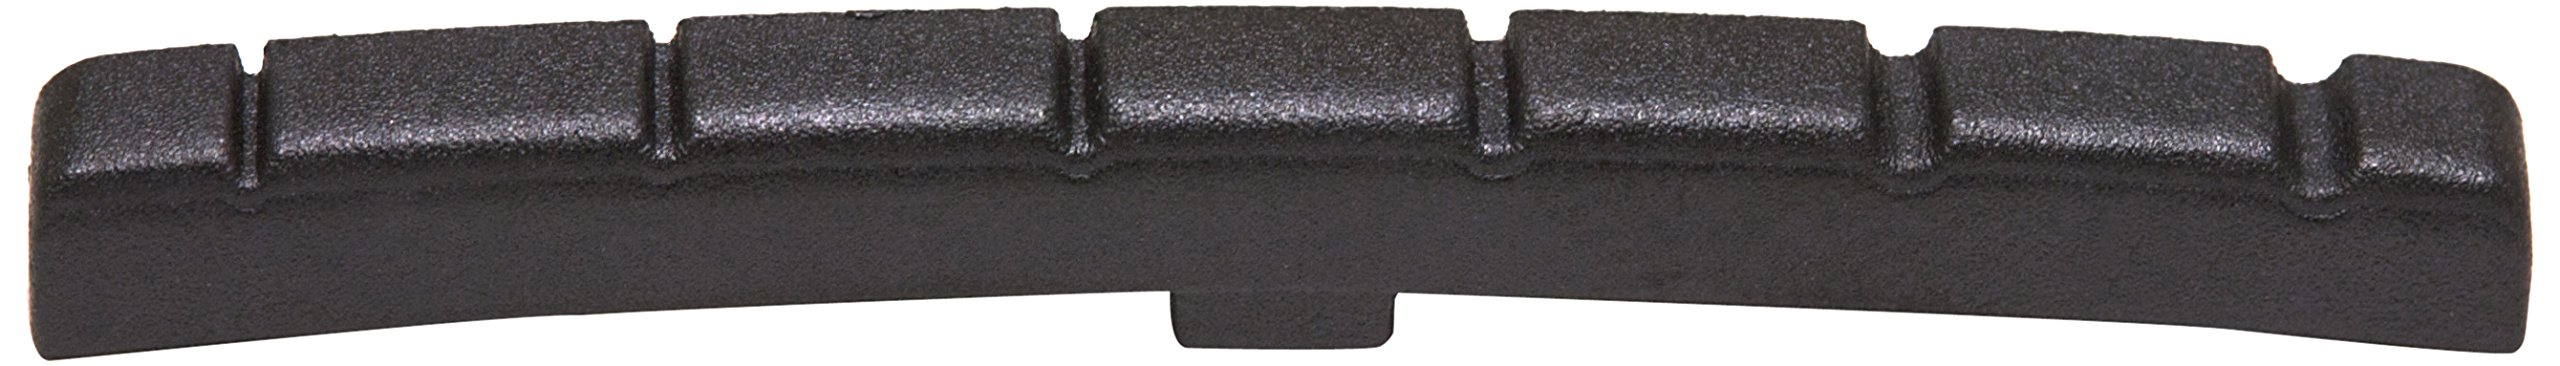 GraphTech PT500000 TUSQ XL Black Self-Lubricating Slotted Nut, Fender Style